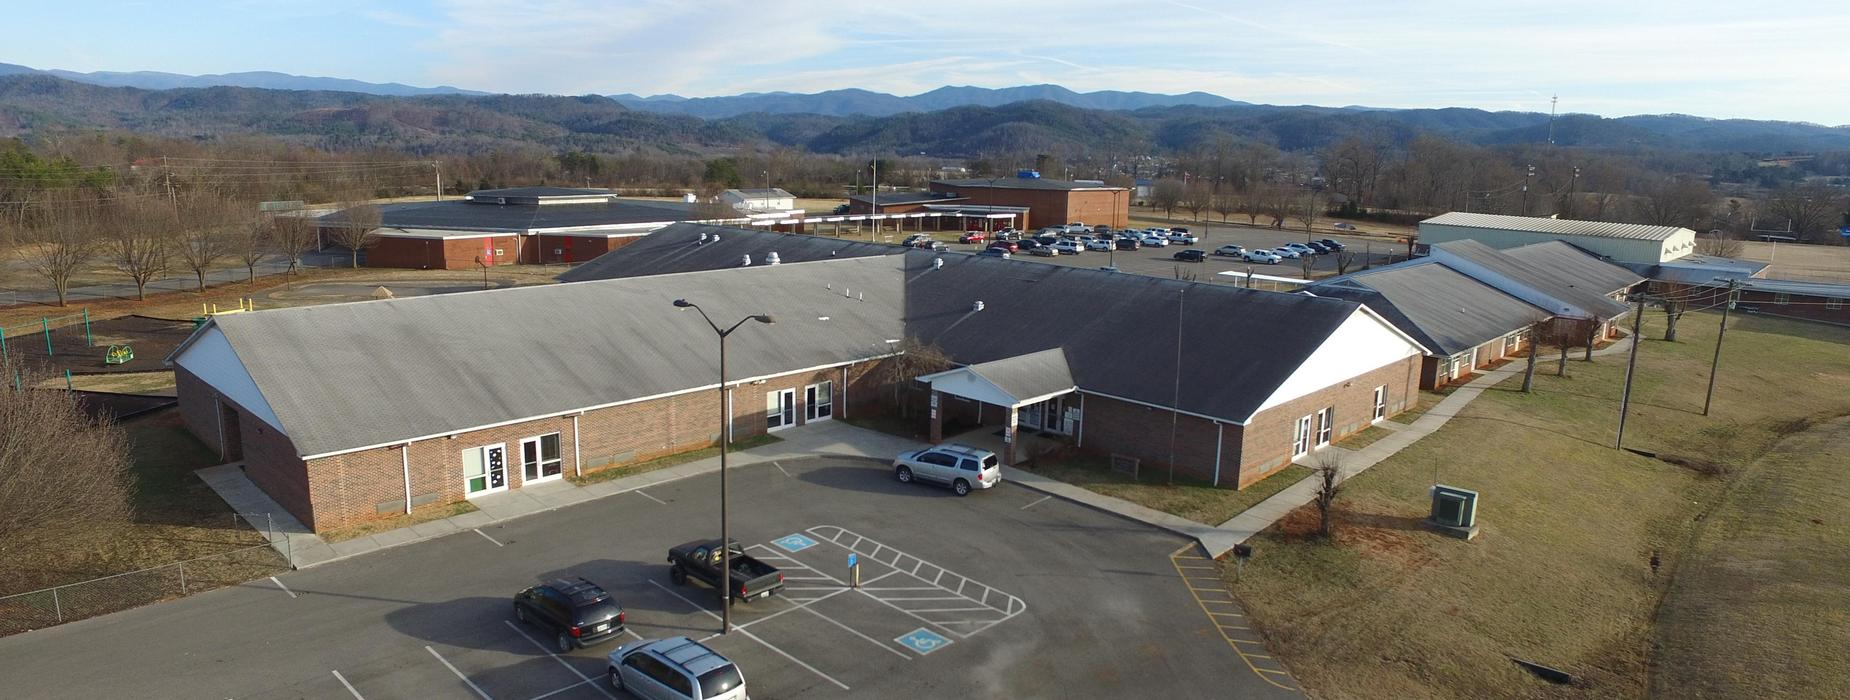 Picture of Tellico Plains Elementary School